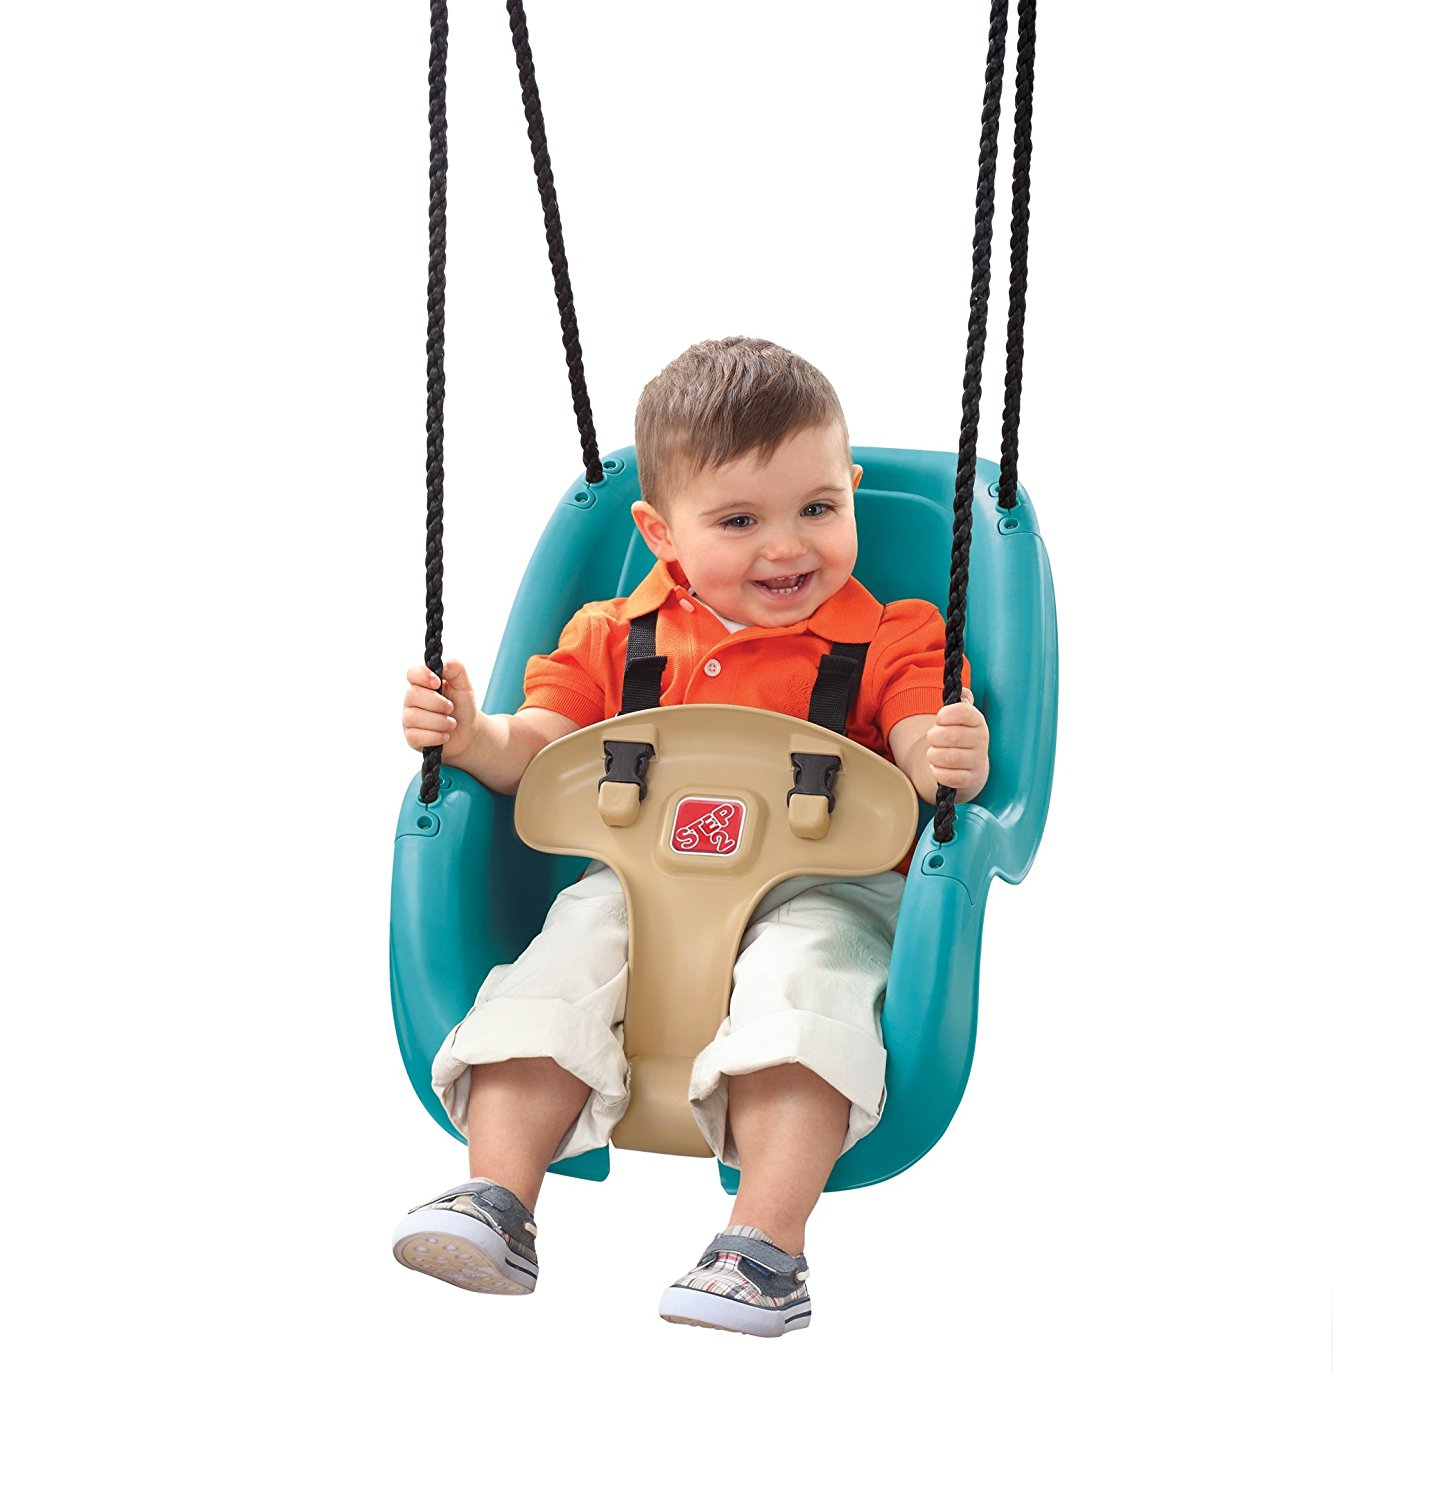 Best Baby Swing for Colic of 2017